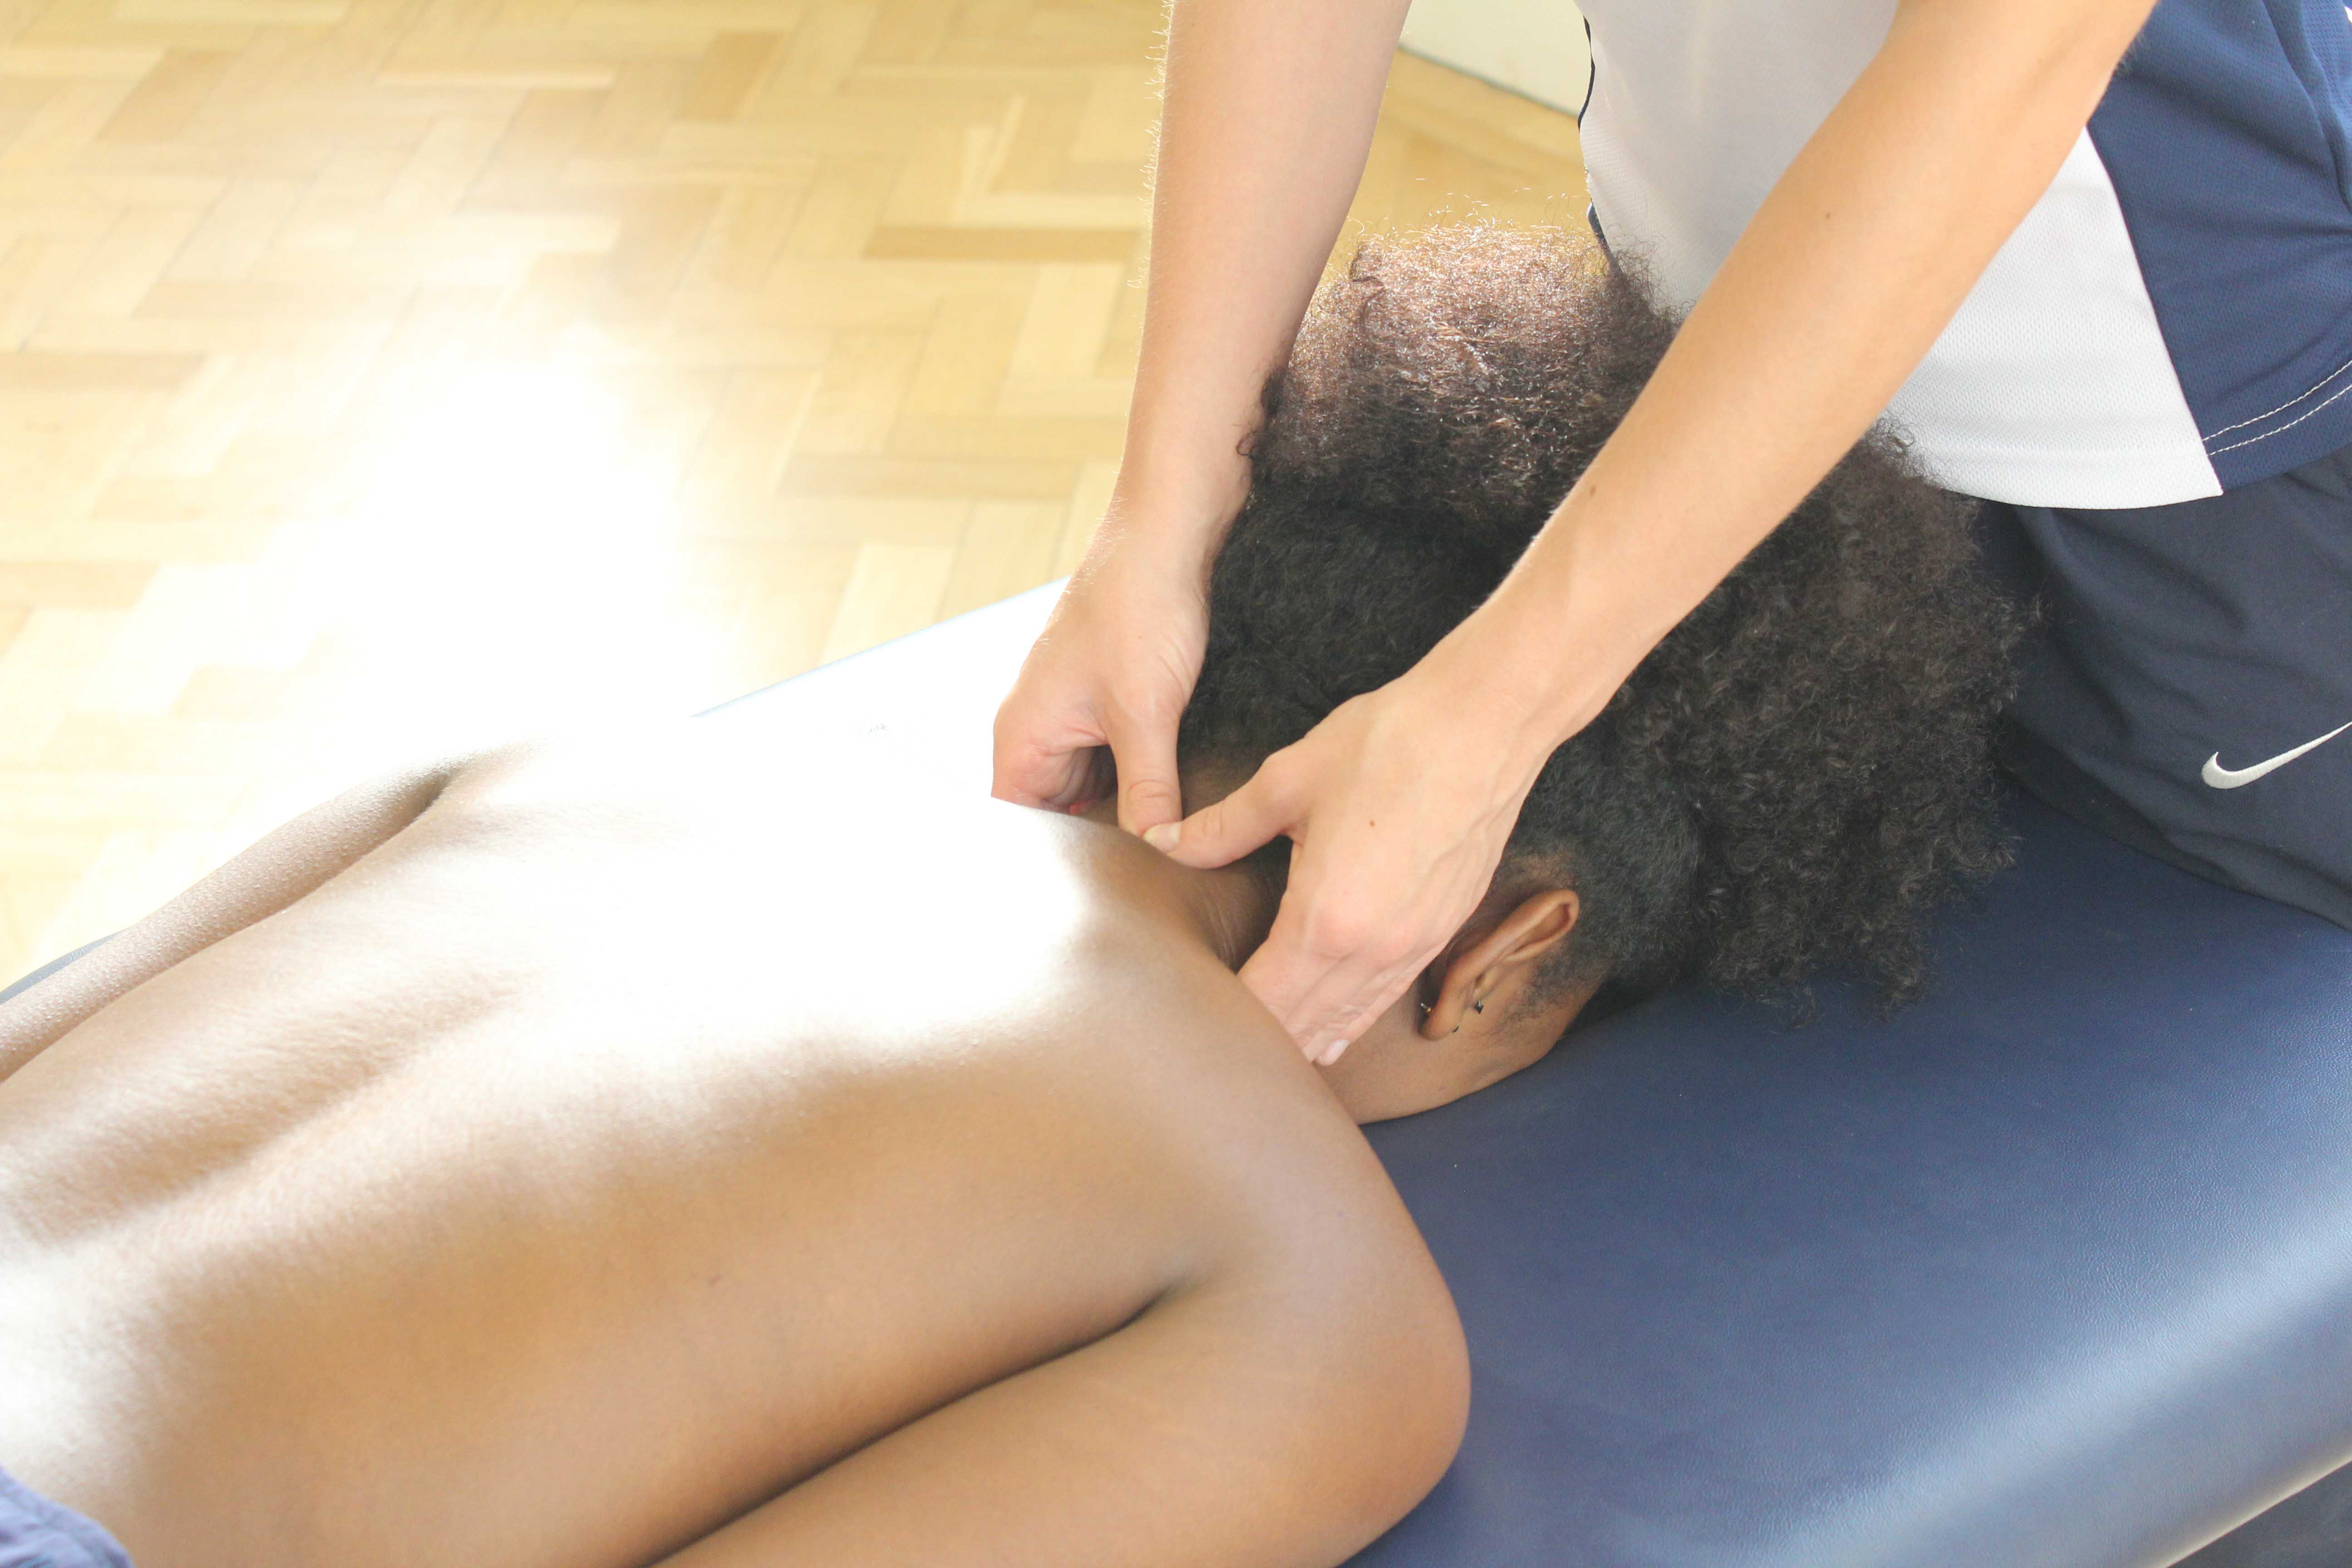 Mobilisations of the cervical vertebrea by an experienced physiotherapist